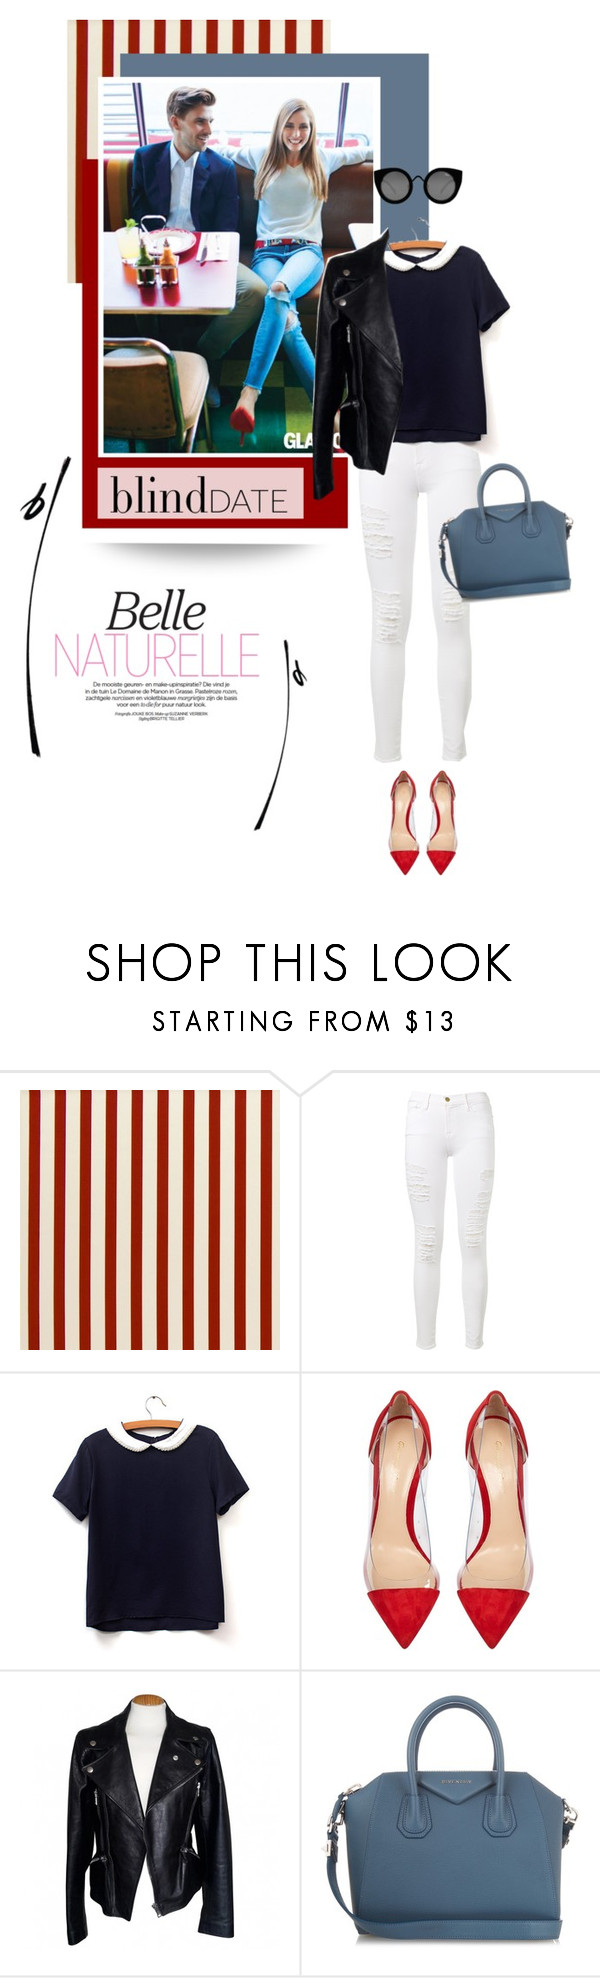 """Blind Date"" by pippi-loves-music ❤ liked on Polyvore featuring Frame, Gianvito Rossi, Alexander McQueen, Givenchy, Quay and blinddate"